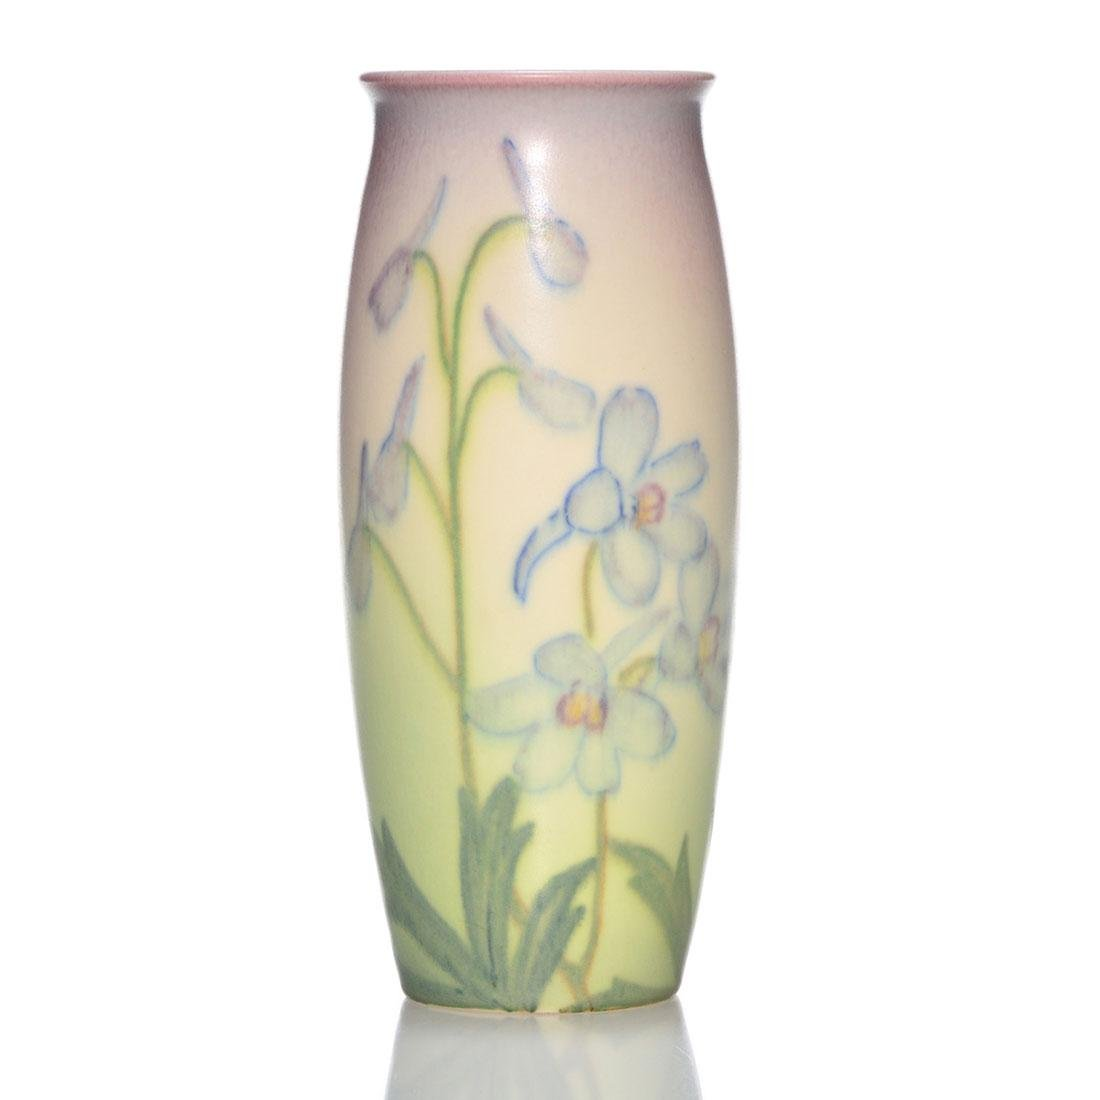 Symbol Of The Brand Yellow Rookwood 1933 Vase And To Have A Long Life. Art Pottery